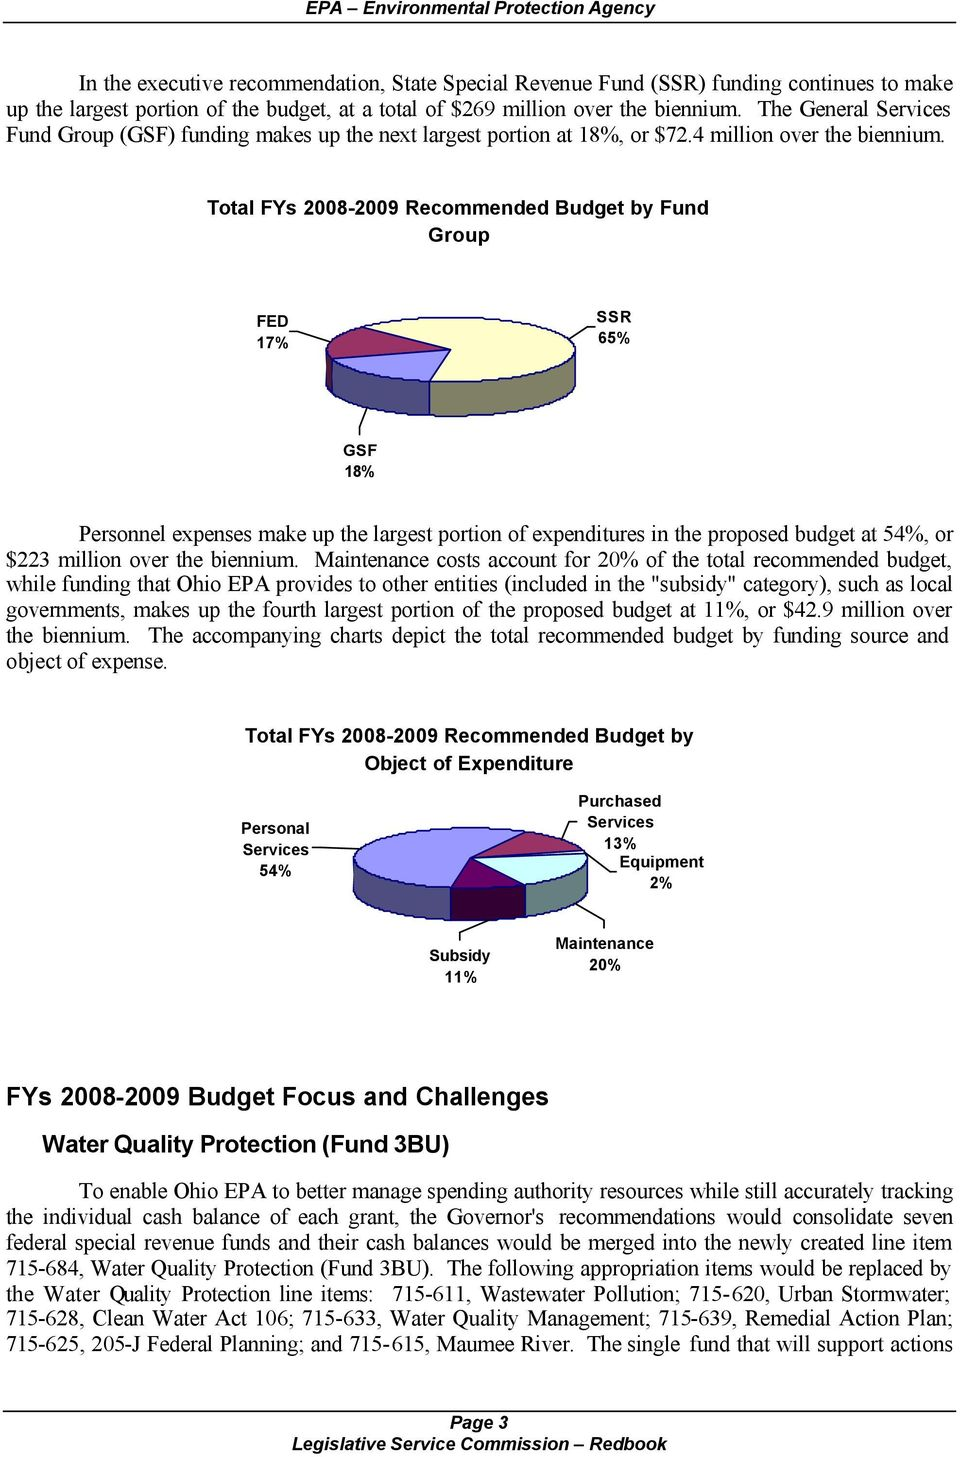 Total FYs - Recommended Budget by Fund Group FED 17% SSR 65% GSF 18% Personnel expenses make up the largest portion of expenditures in the proposed budget at 54%, or $223 million over the biennium.